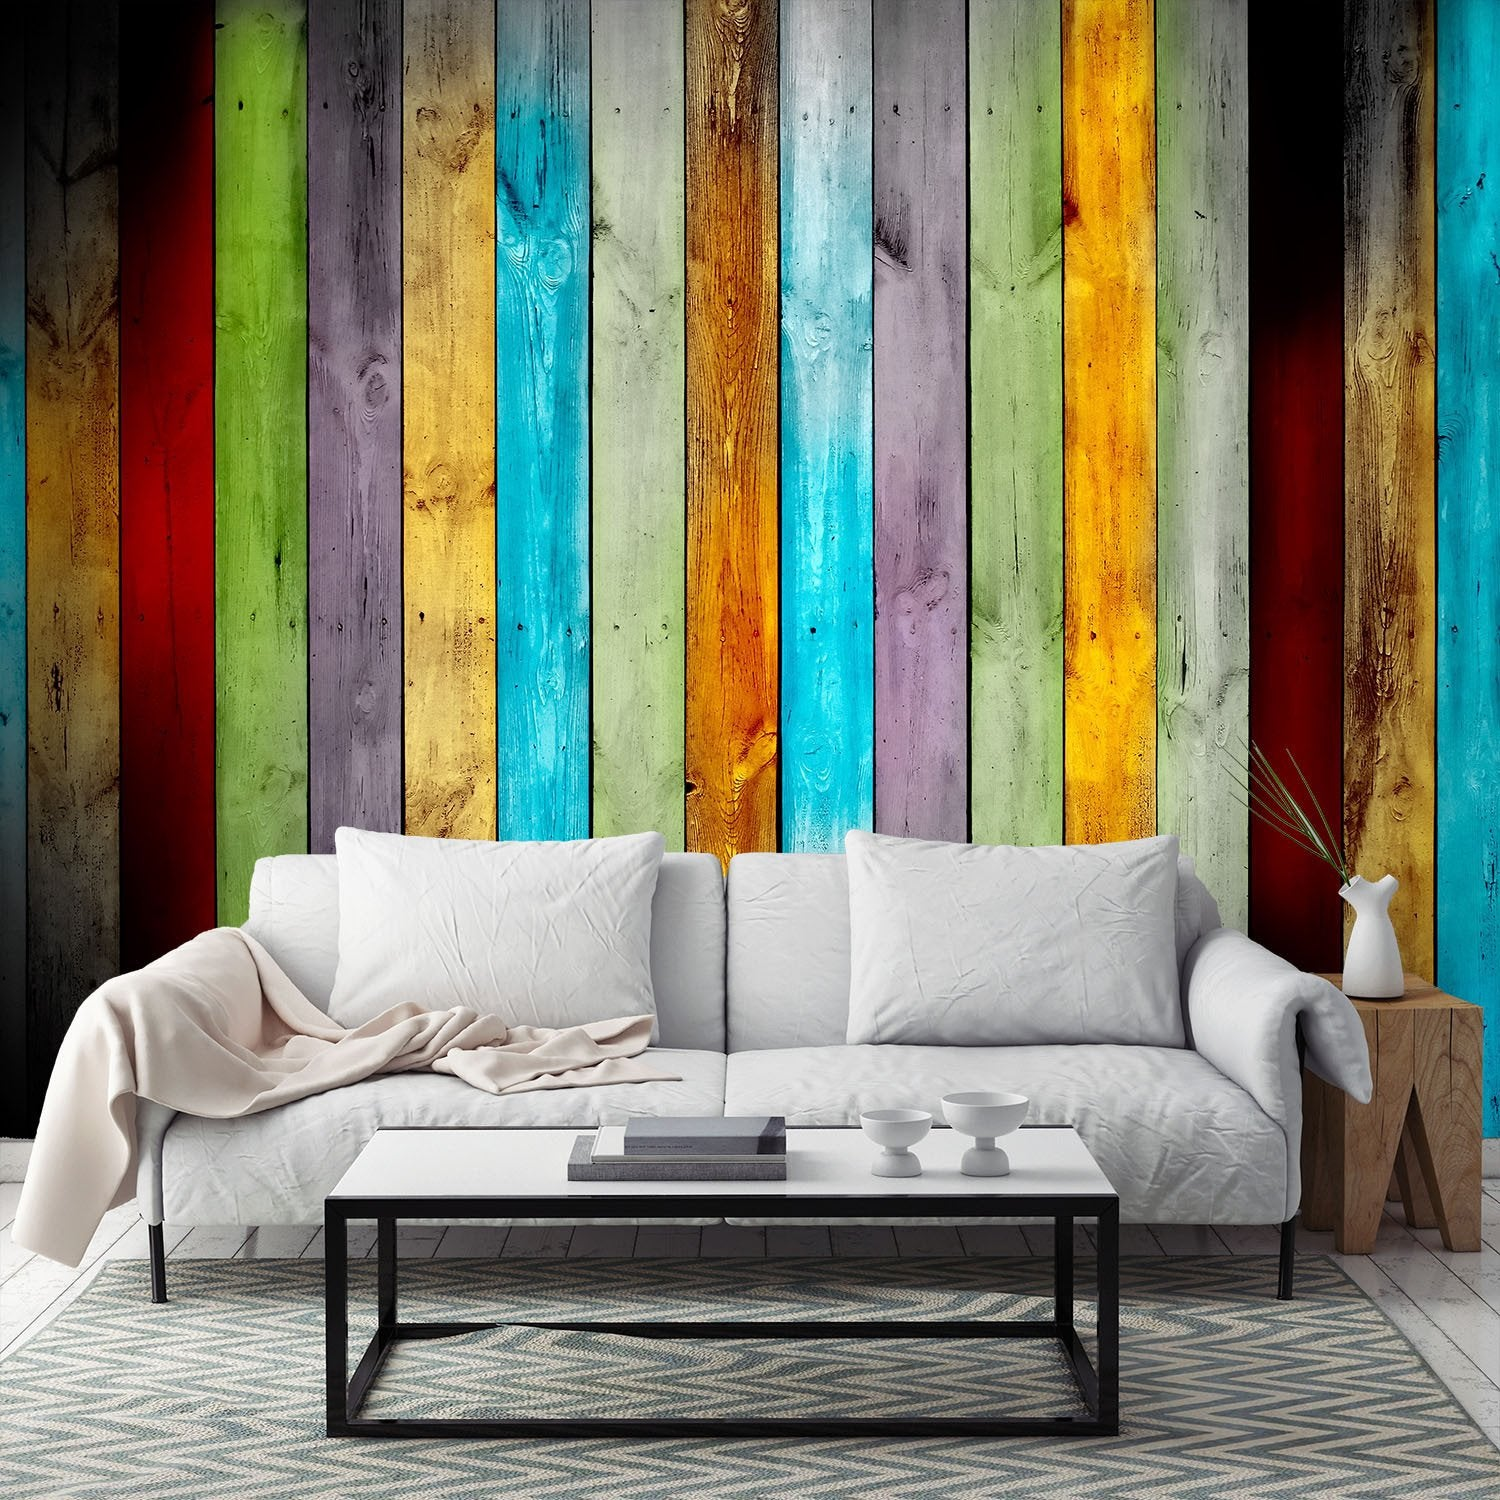 Colorful Wooden Boards Wallpaper AJ Wallpaper